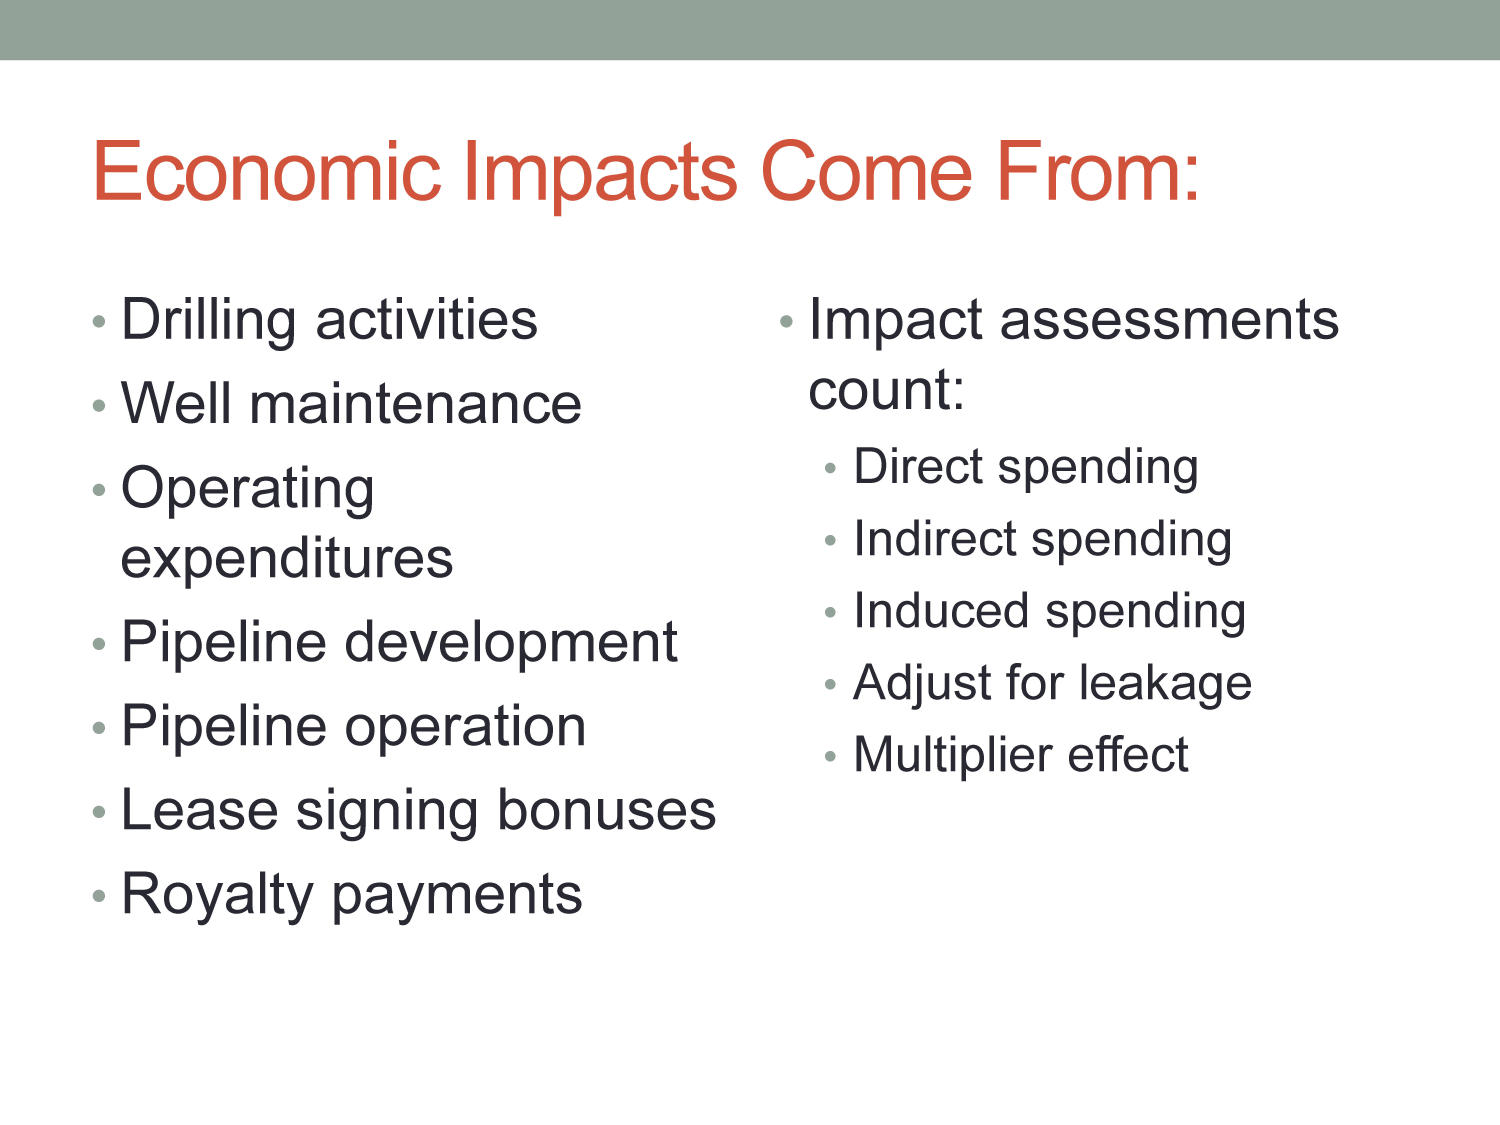 Economic Impacts of the Natural Gas Industry in North Texas                                                                                                      [Sequence #]: 4 of 11